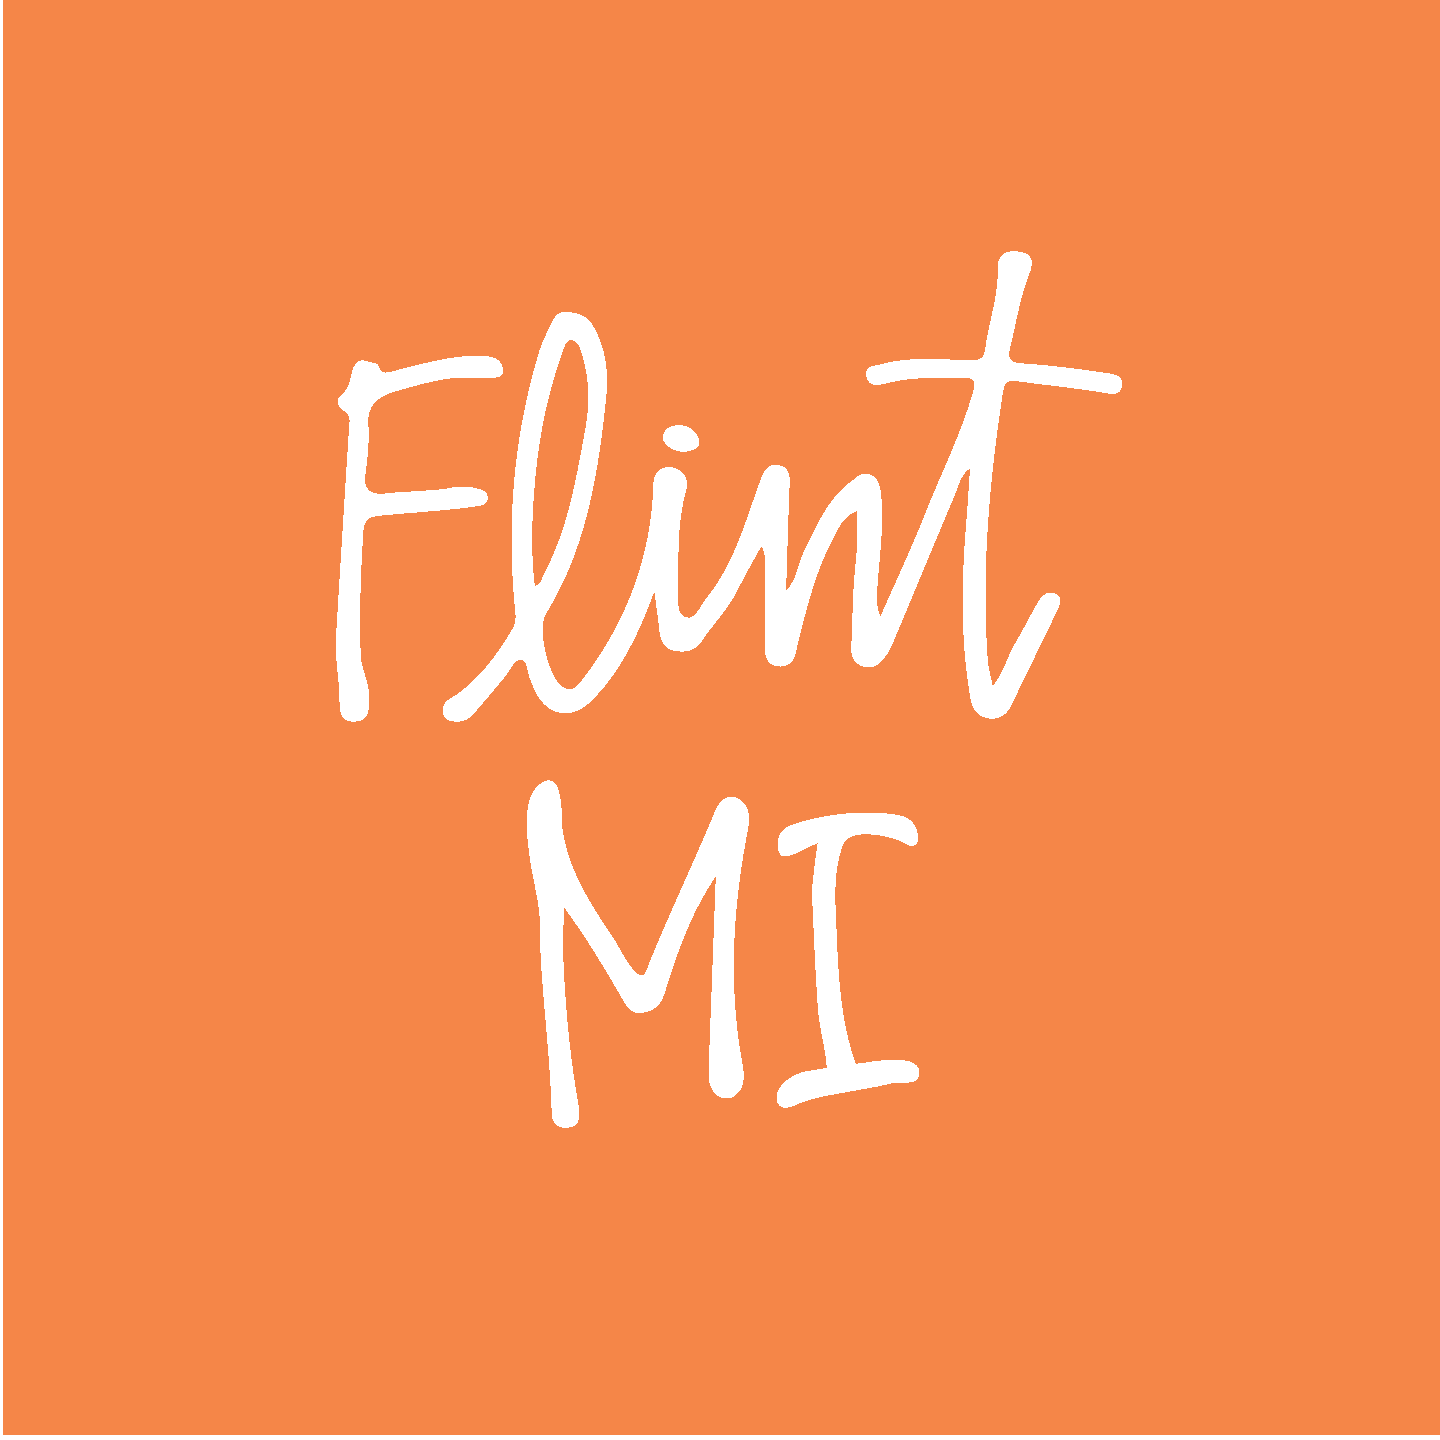 Flint, MI Mobile Tour Stop - August 6 – September 4, 2019